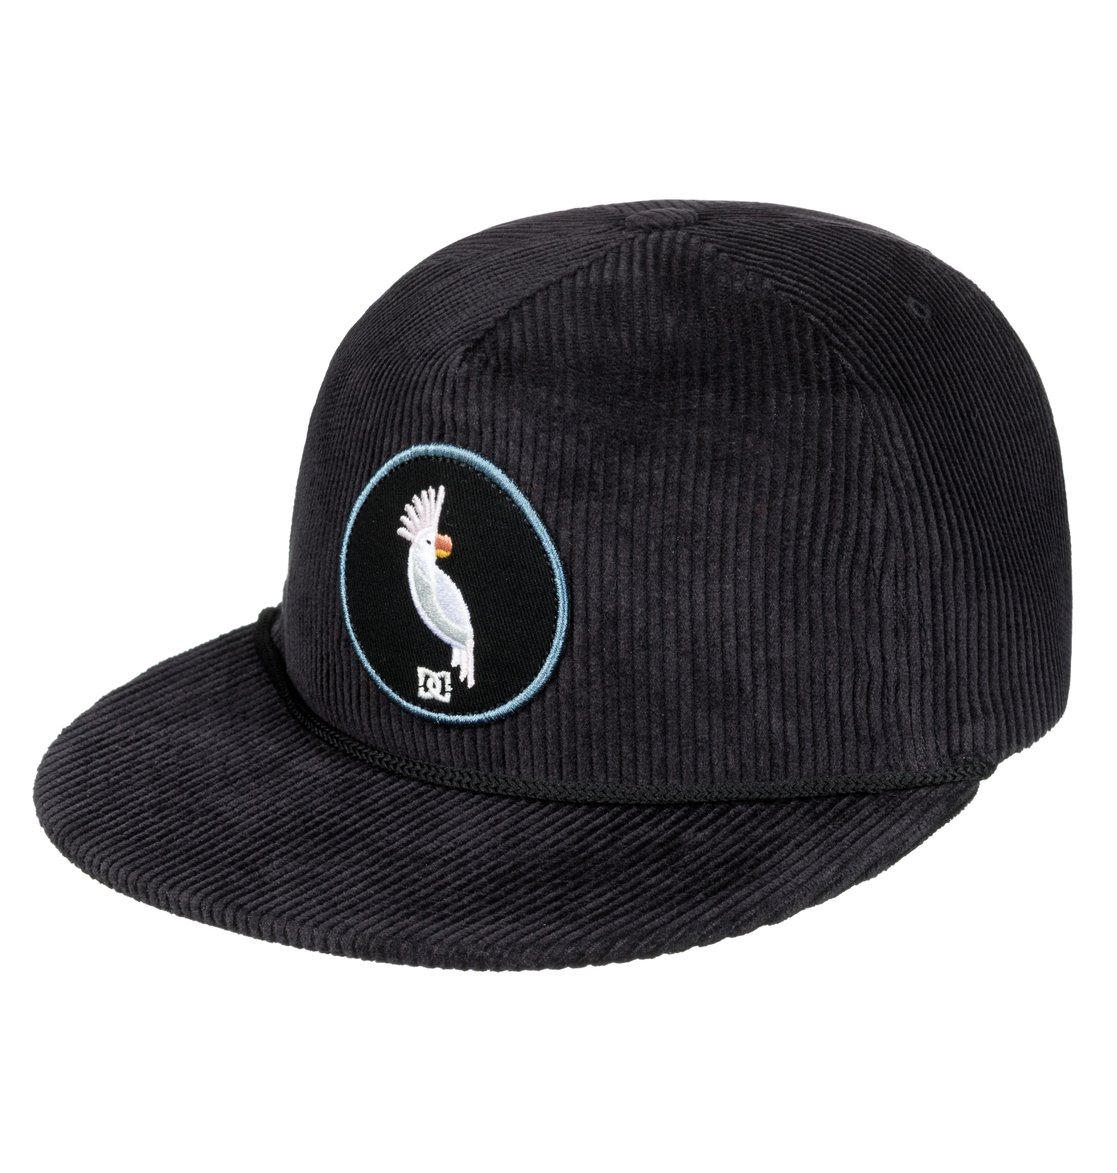 Birds Of Empire - Snapback Cap für Männer 3613373484277 | DC Shoes